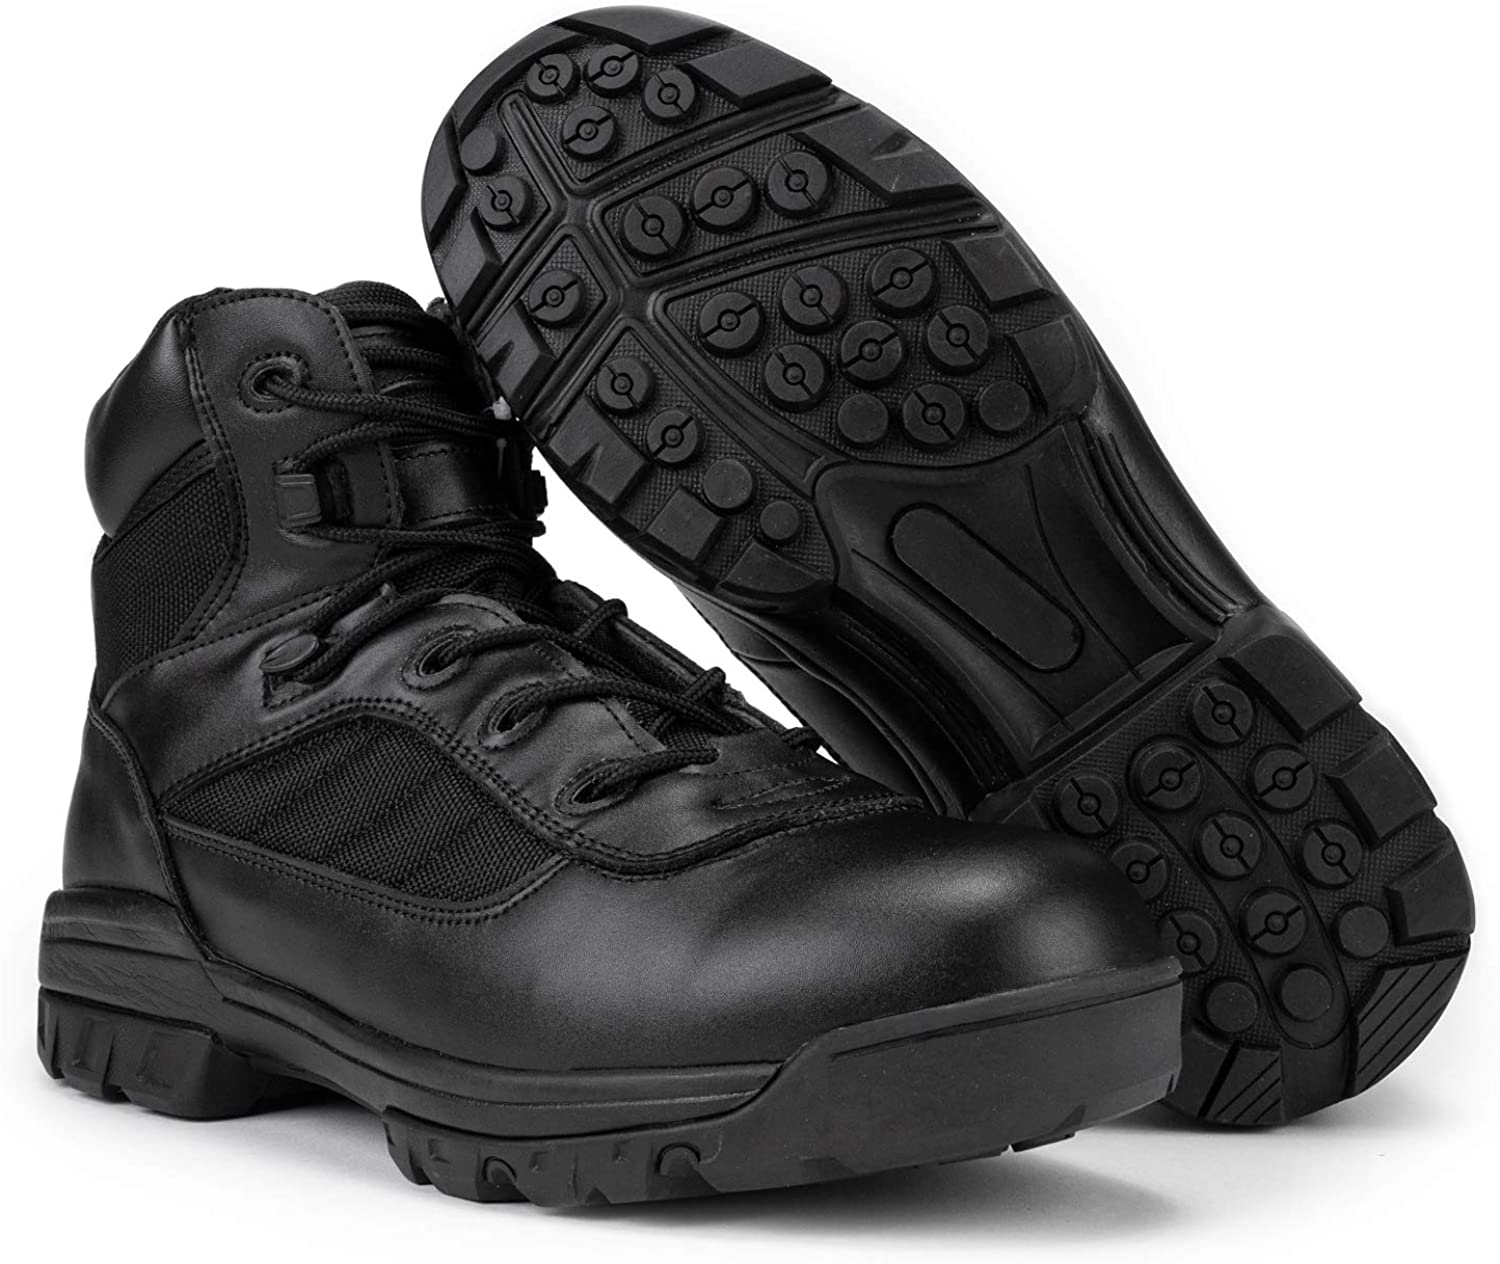 RYNO GEAR Men's Black Tactical EMS Boots with Coolmax Lining for EMT workers.